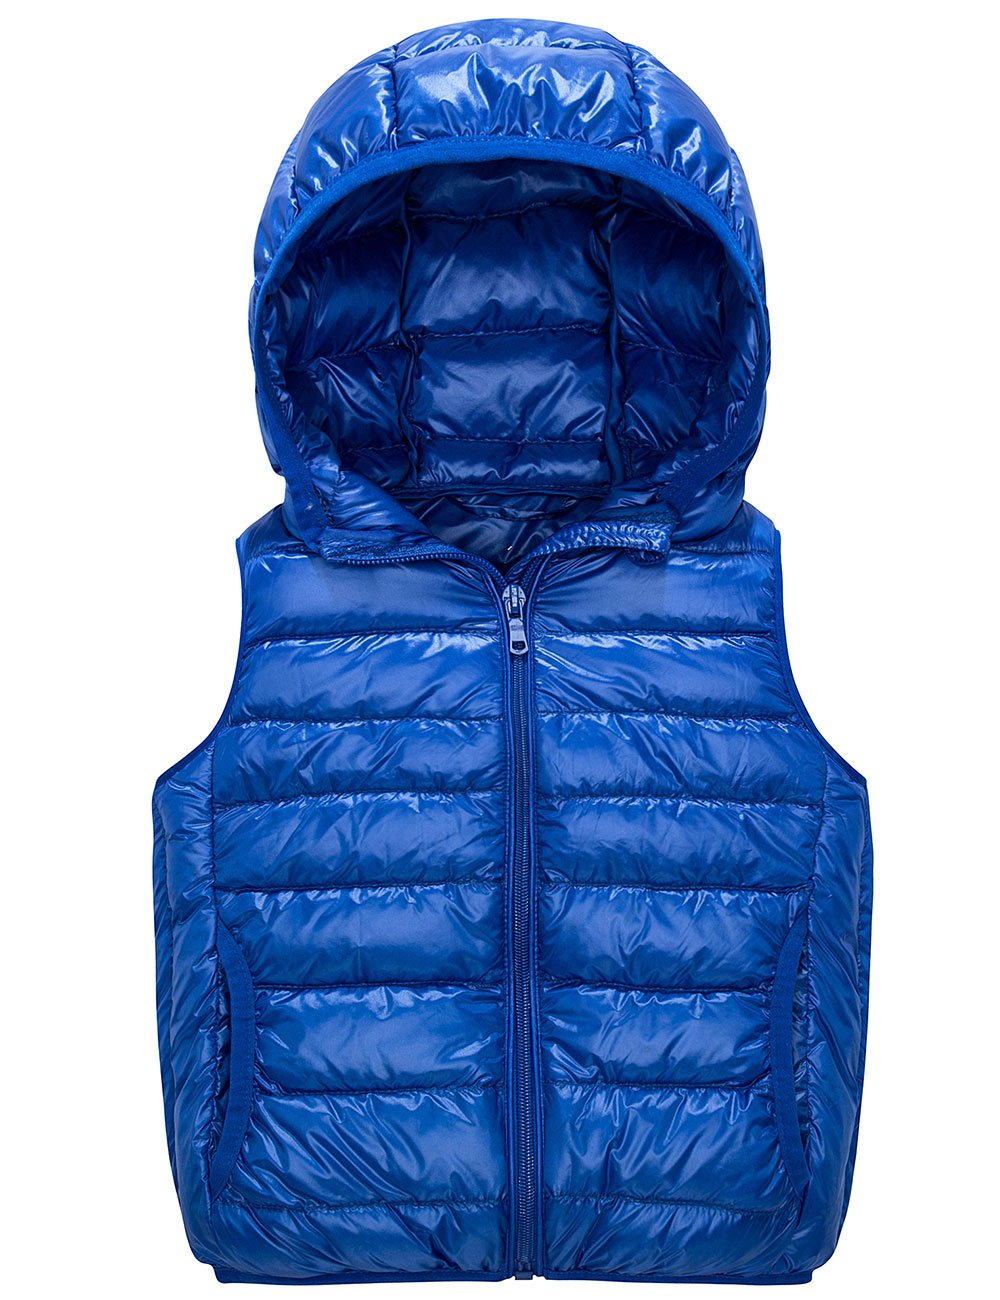 Spring&Gege Kids Lightweight Quilted Packable Hooded Puffer Down Vest for Boys and Girls Blue Size 5-6 Years